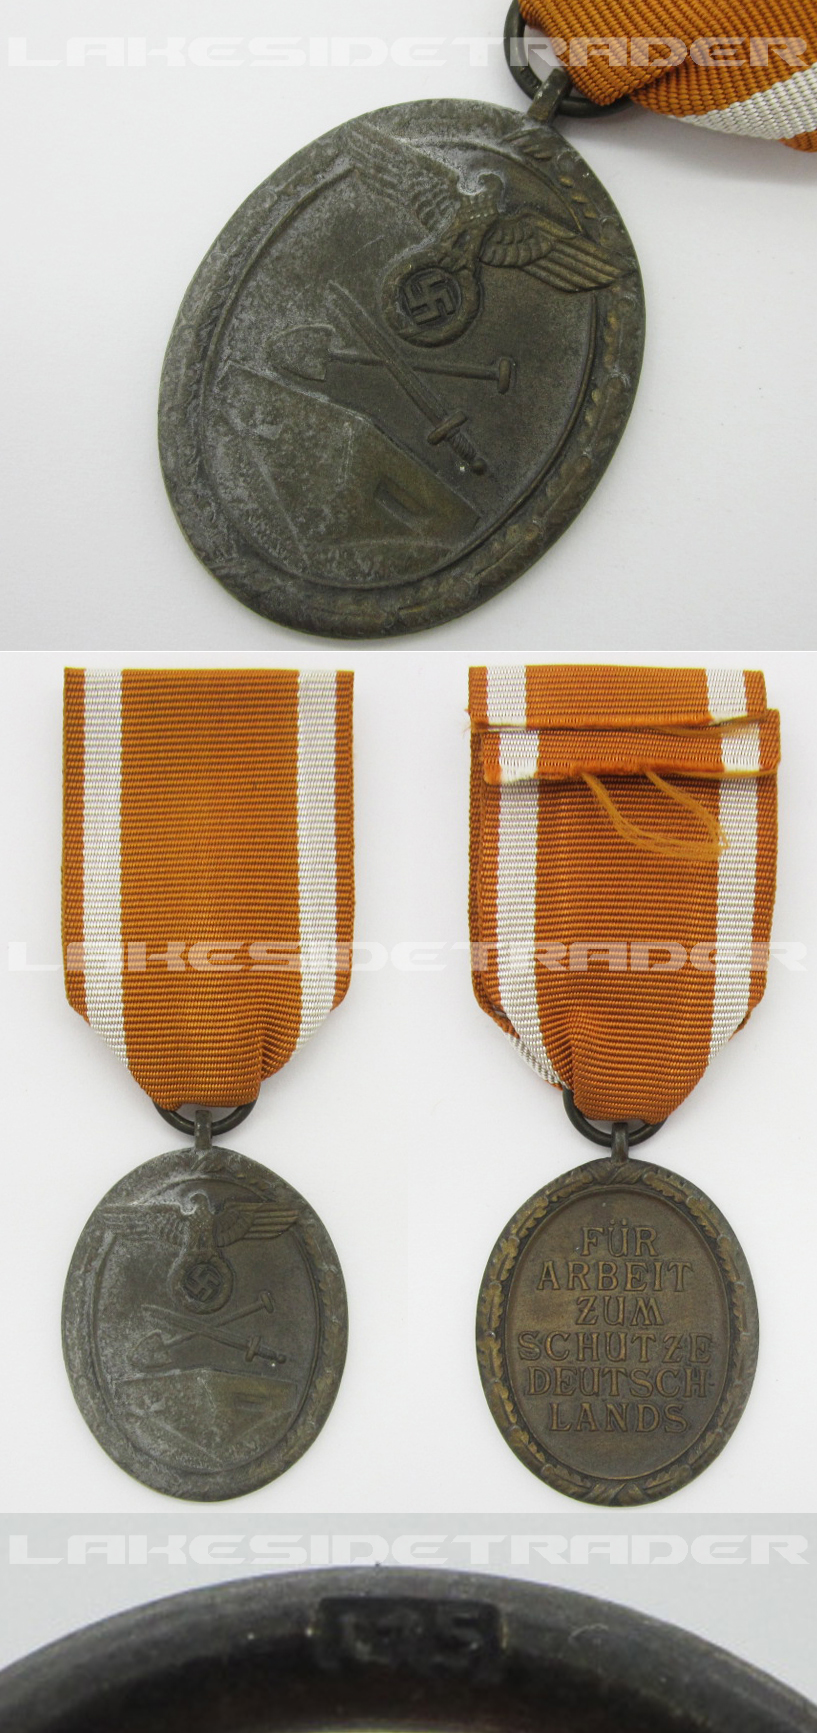 West Wall Medal by L15